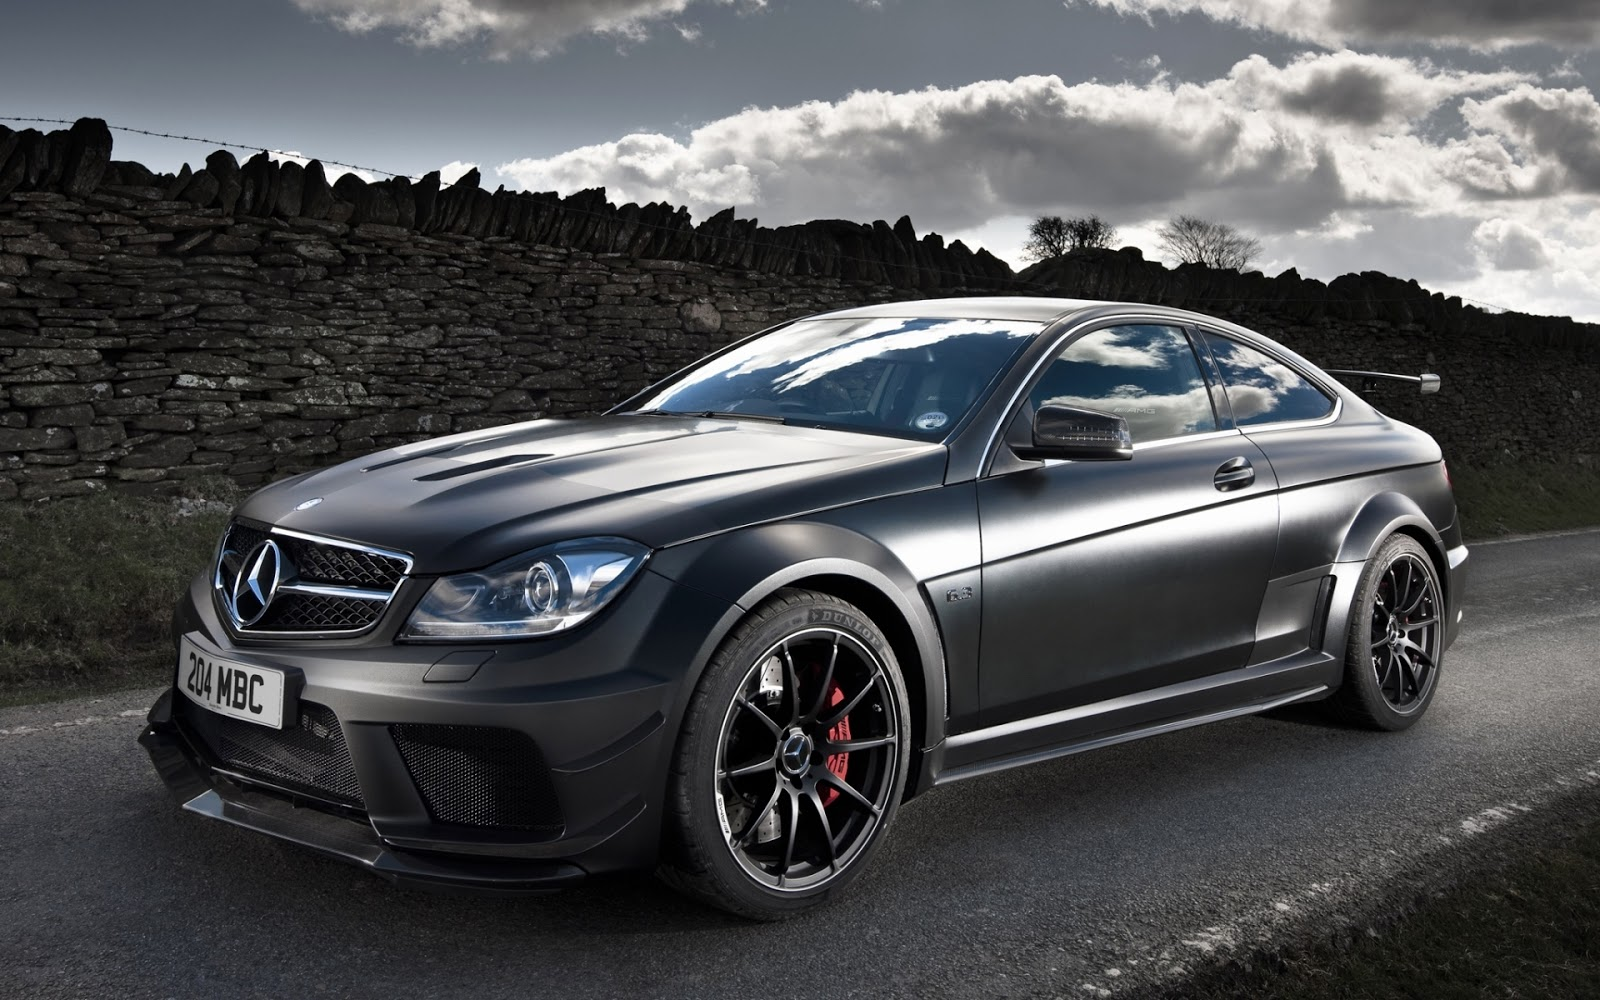 mercedes benz c63 hd wallpapers check out the cool latest mercedes 1600x1000